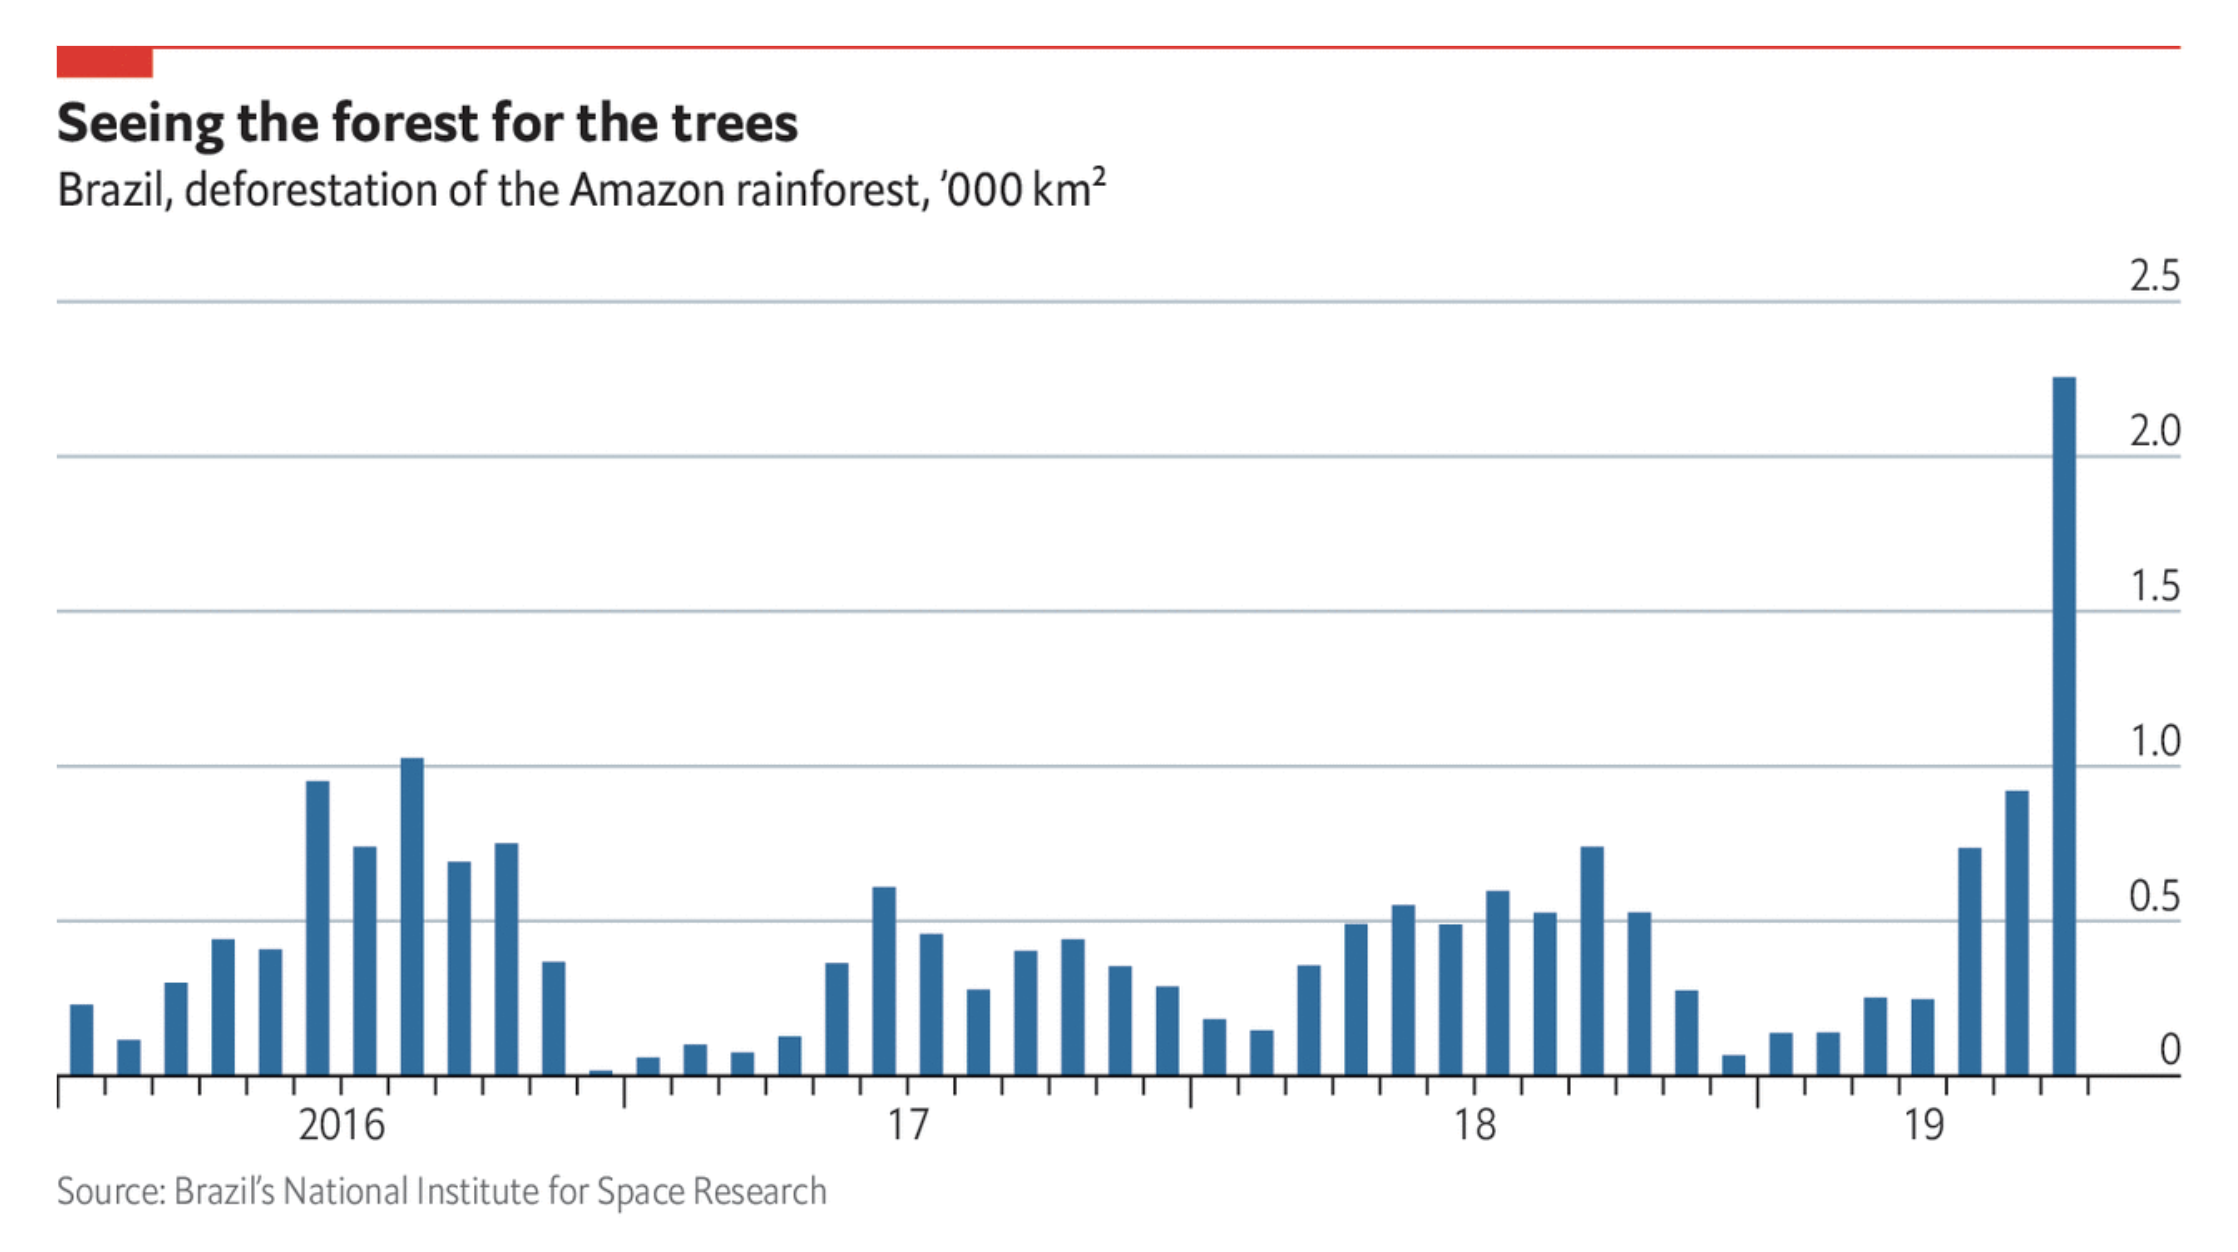 Deforestation in the Amazon has risen sharply in recent years